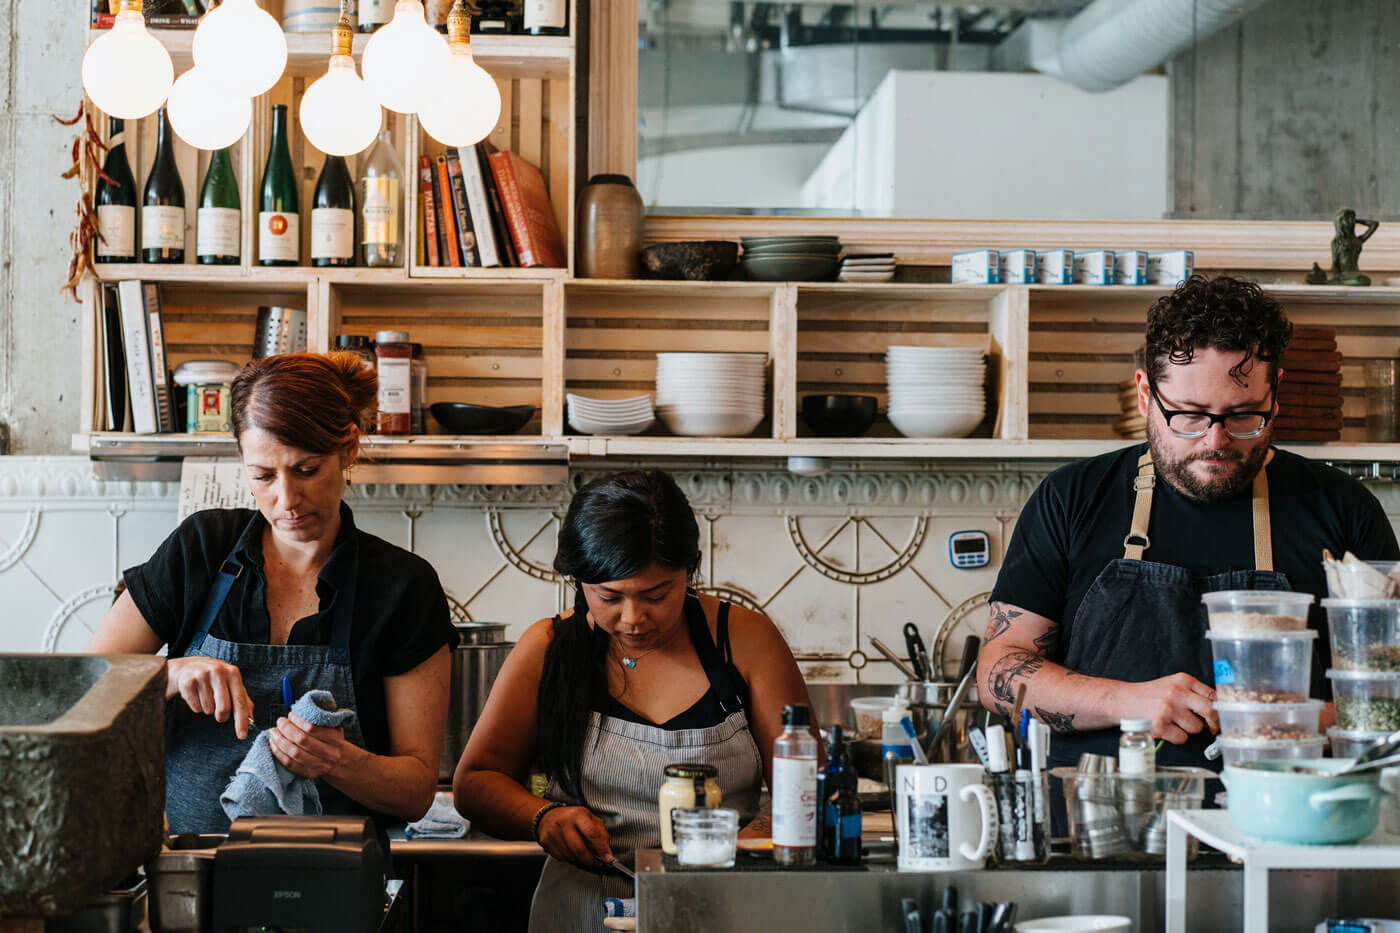 Three employees behind a bar with various spices and dishware